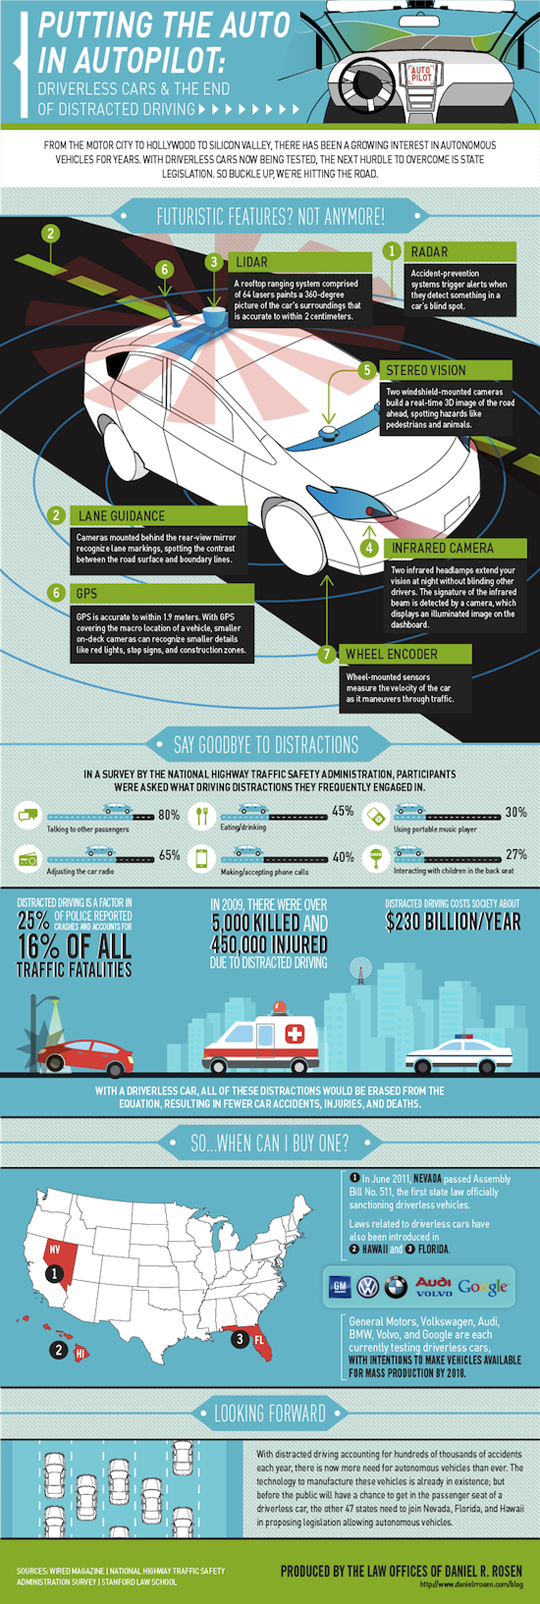 Driverless Cars and Distracted Driving Infographic